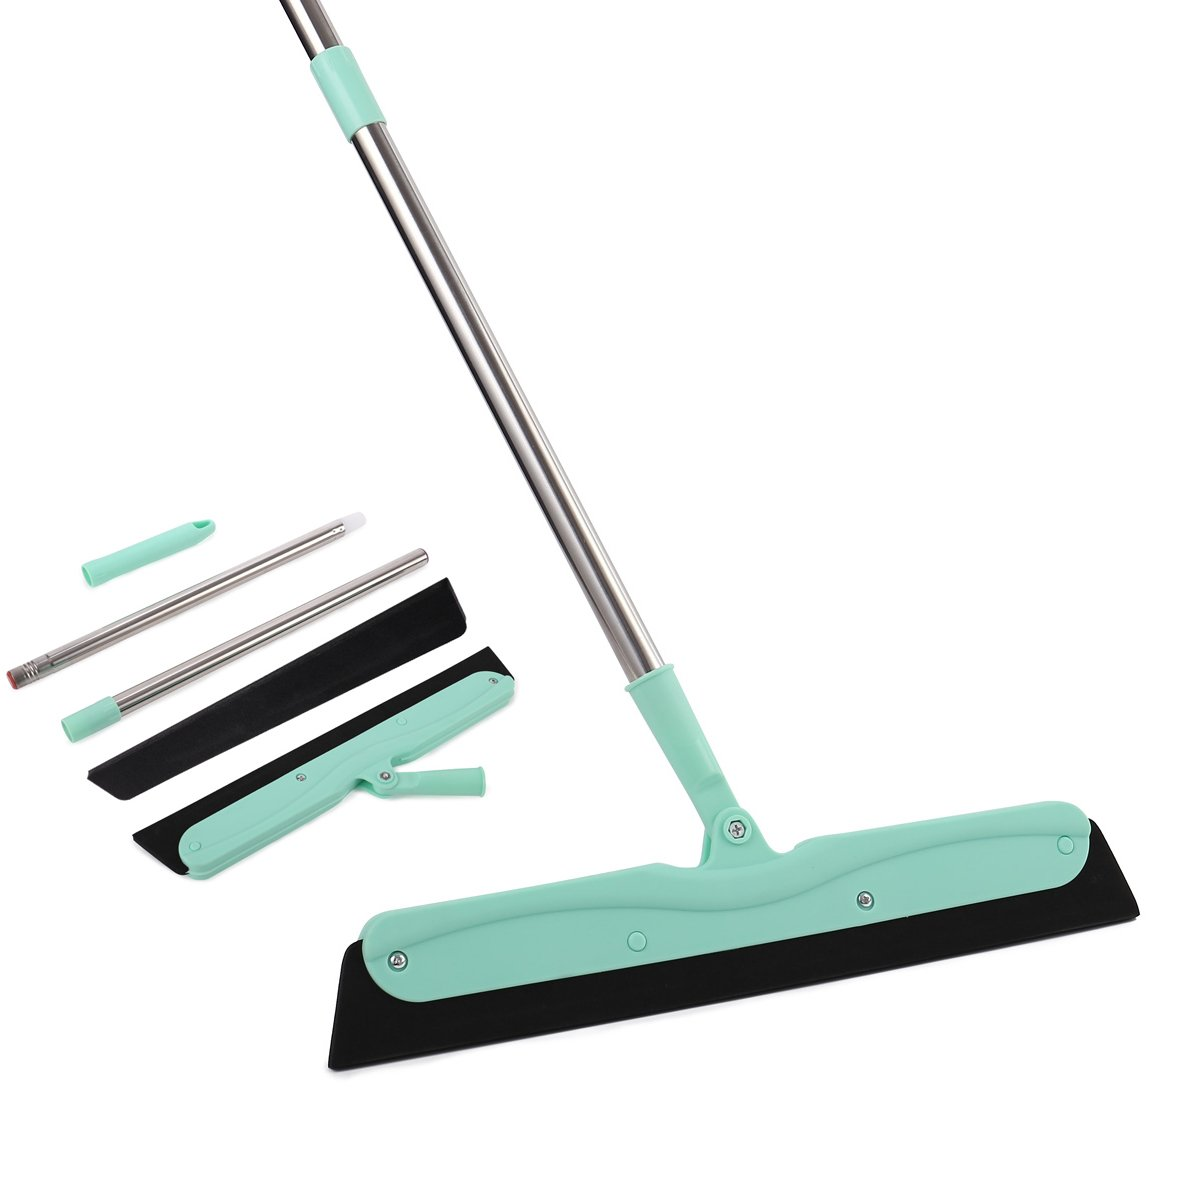 YCUTE Floor Squeegee with EVA Foam Blades (15'' Wide), 36'' Stainless Steel Long Handle, Swivelled Joint for Cleaning Glass Wood Tile Shower Stalls Cat/ Dog Fur on Carpet - Mint Green